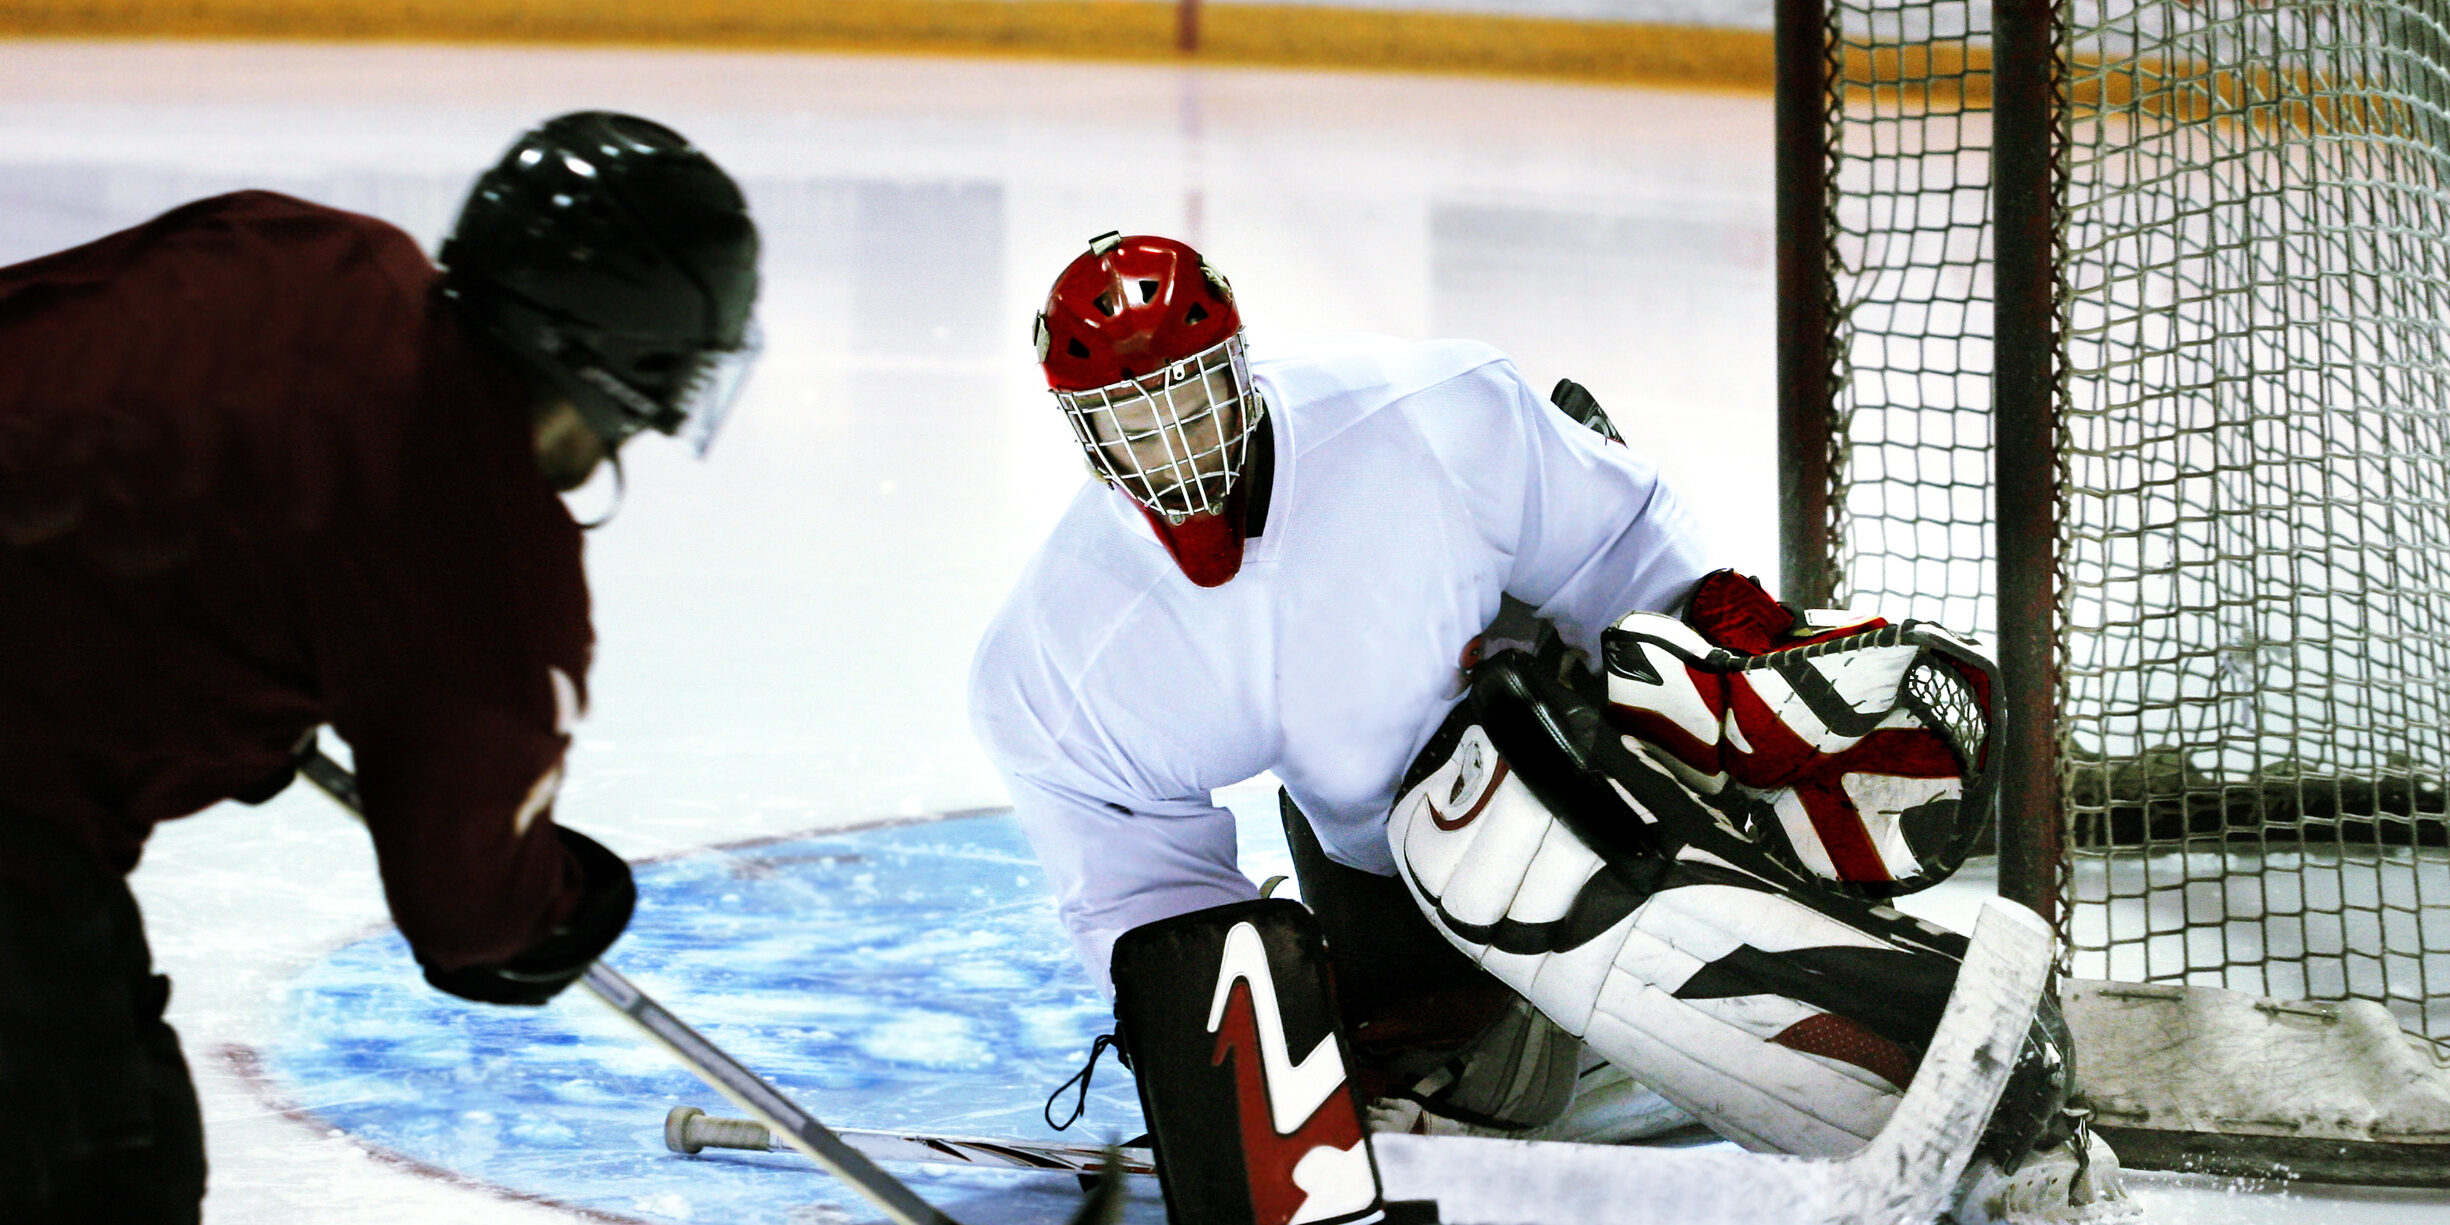 ice hockey goalie stopping shot